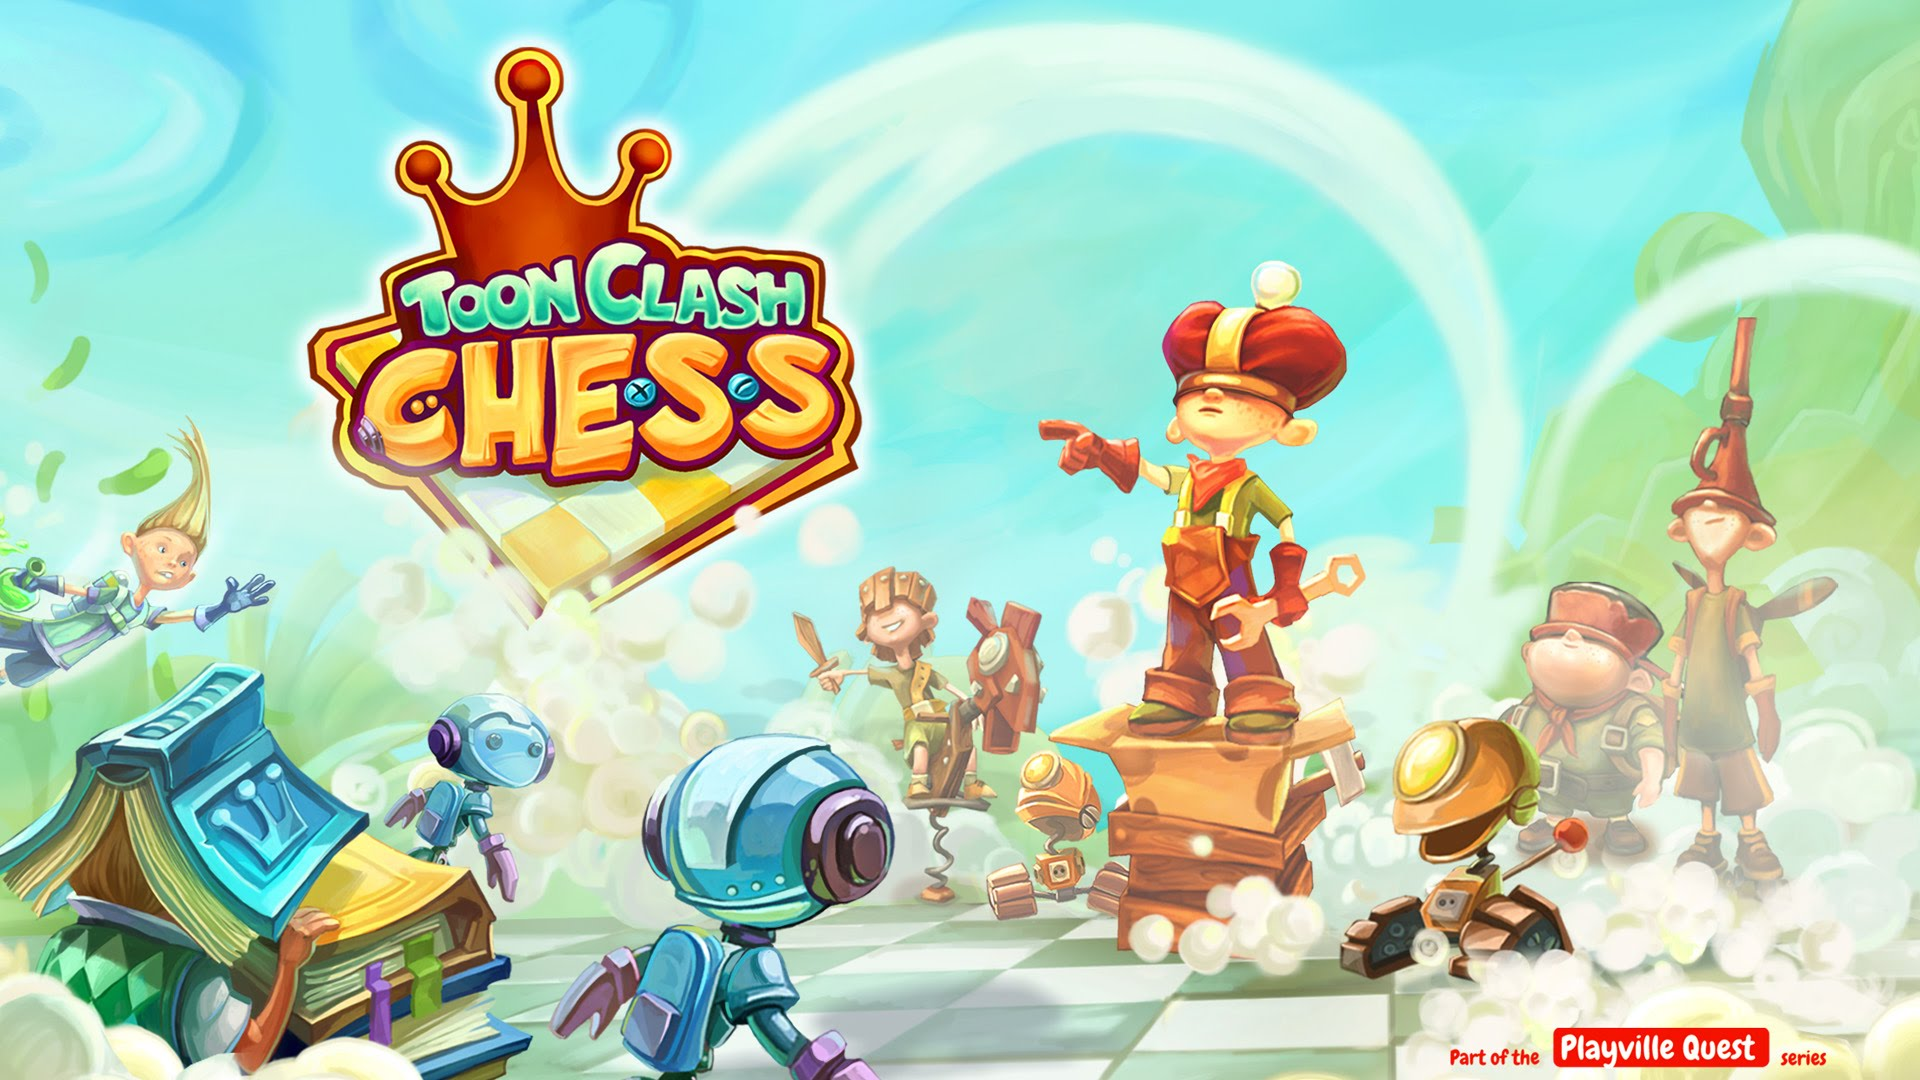 Download Toon Clash Chess Board Game APK File